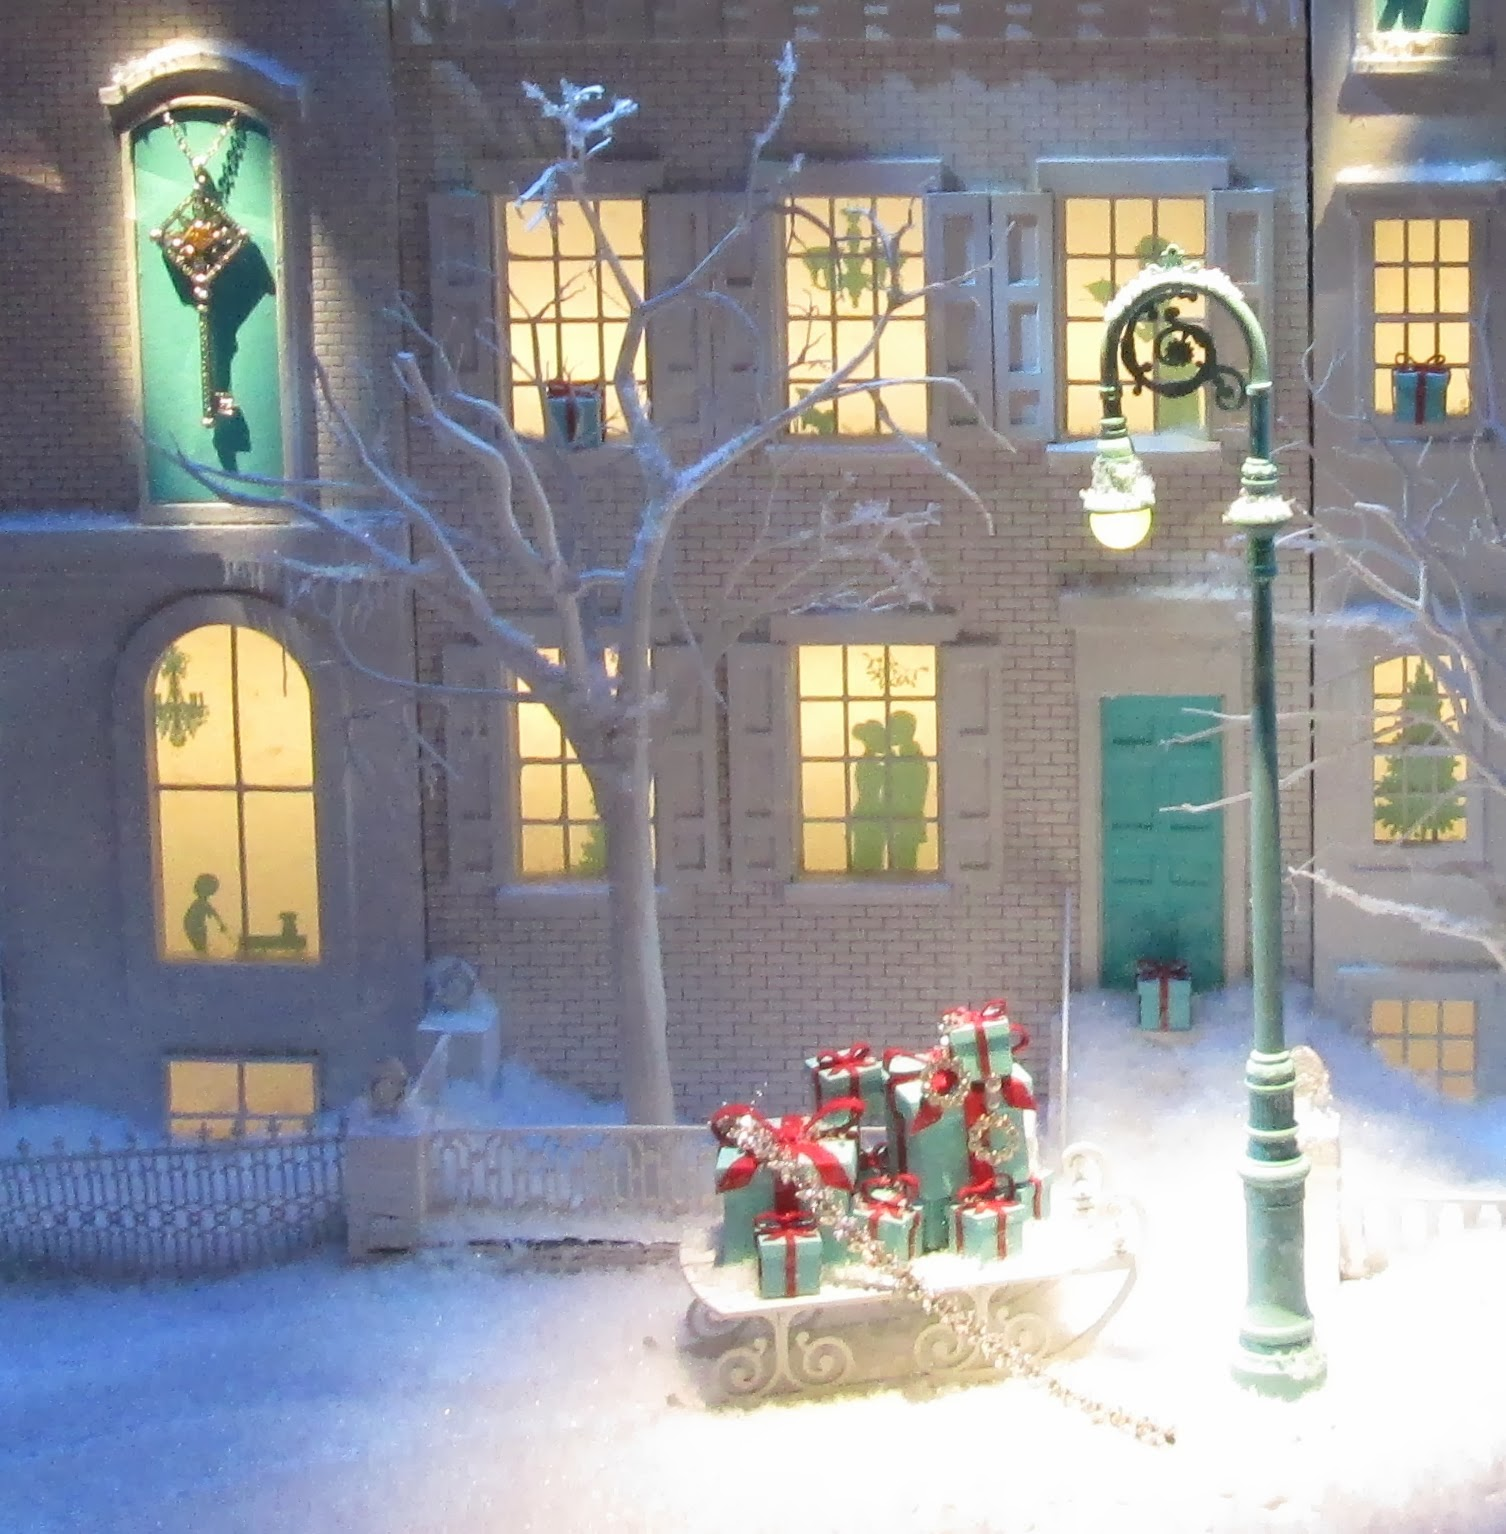 Tiffany And Co Home Decor: Everything Just So: Christmas In New York 2013: Tiffany & Co